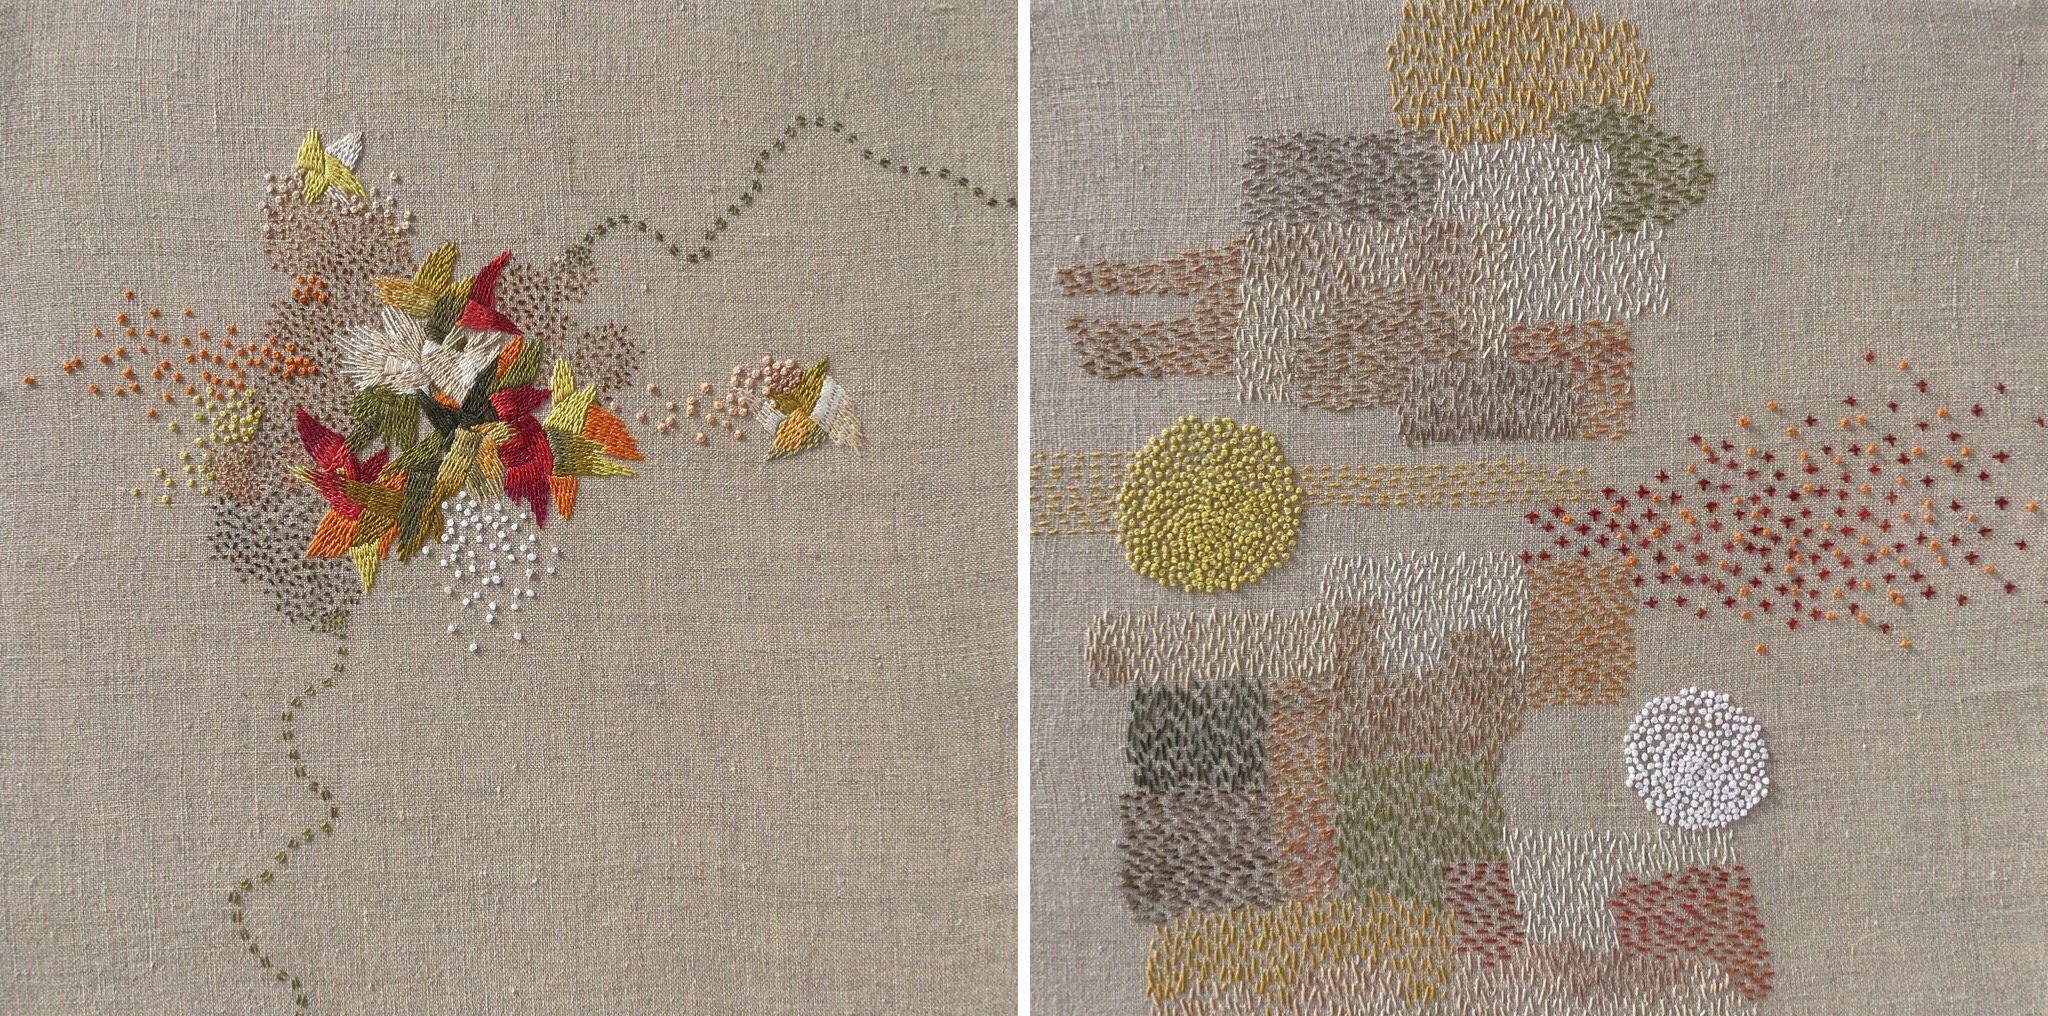 "Bonnie Sennott,  A Year in Thread: June  (left) and  A Year in Thread: November  (right), pearl cotton and linen, each 12"" x 12"" (2016)"